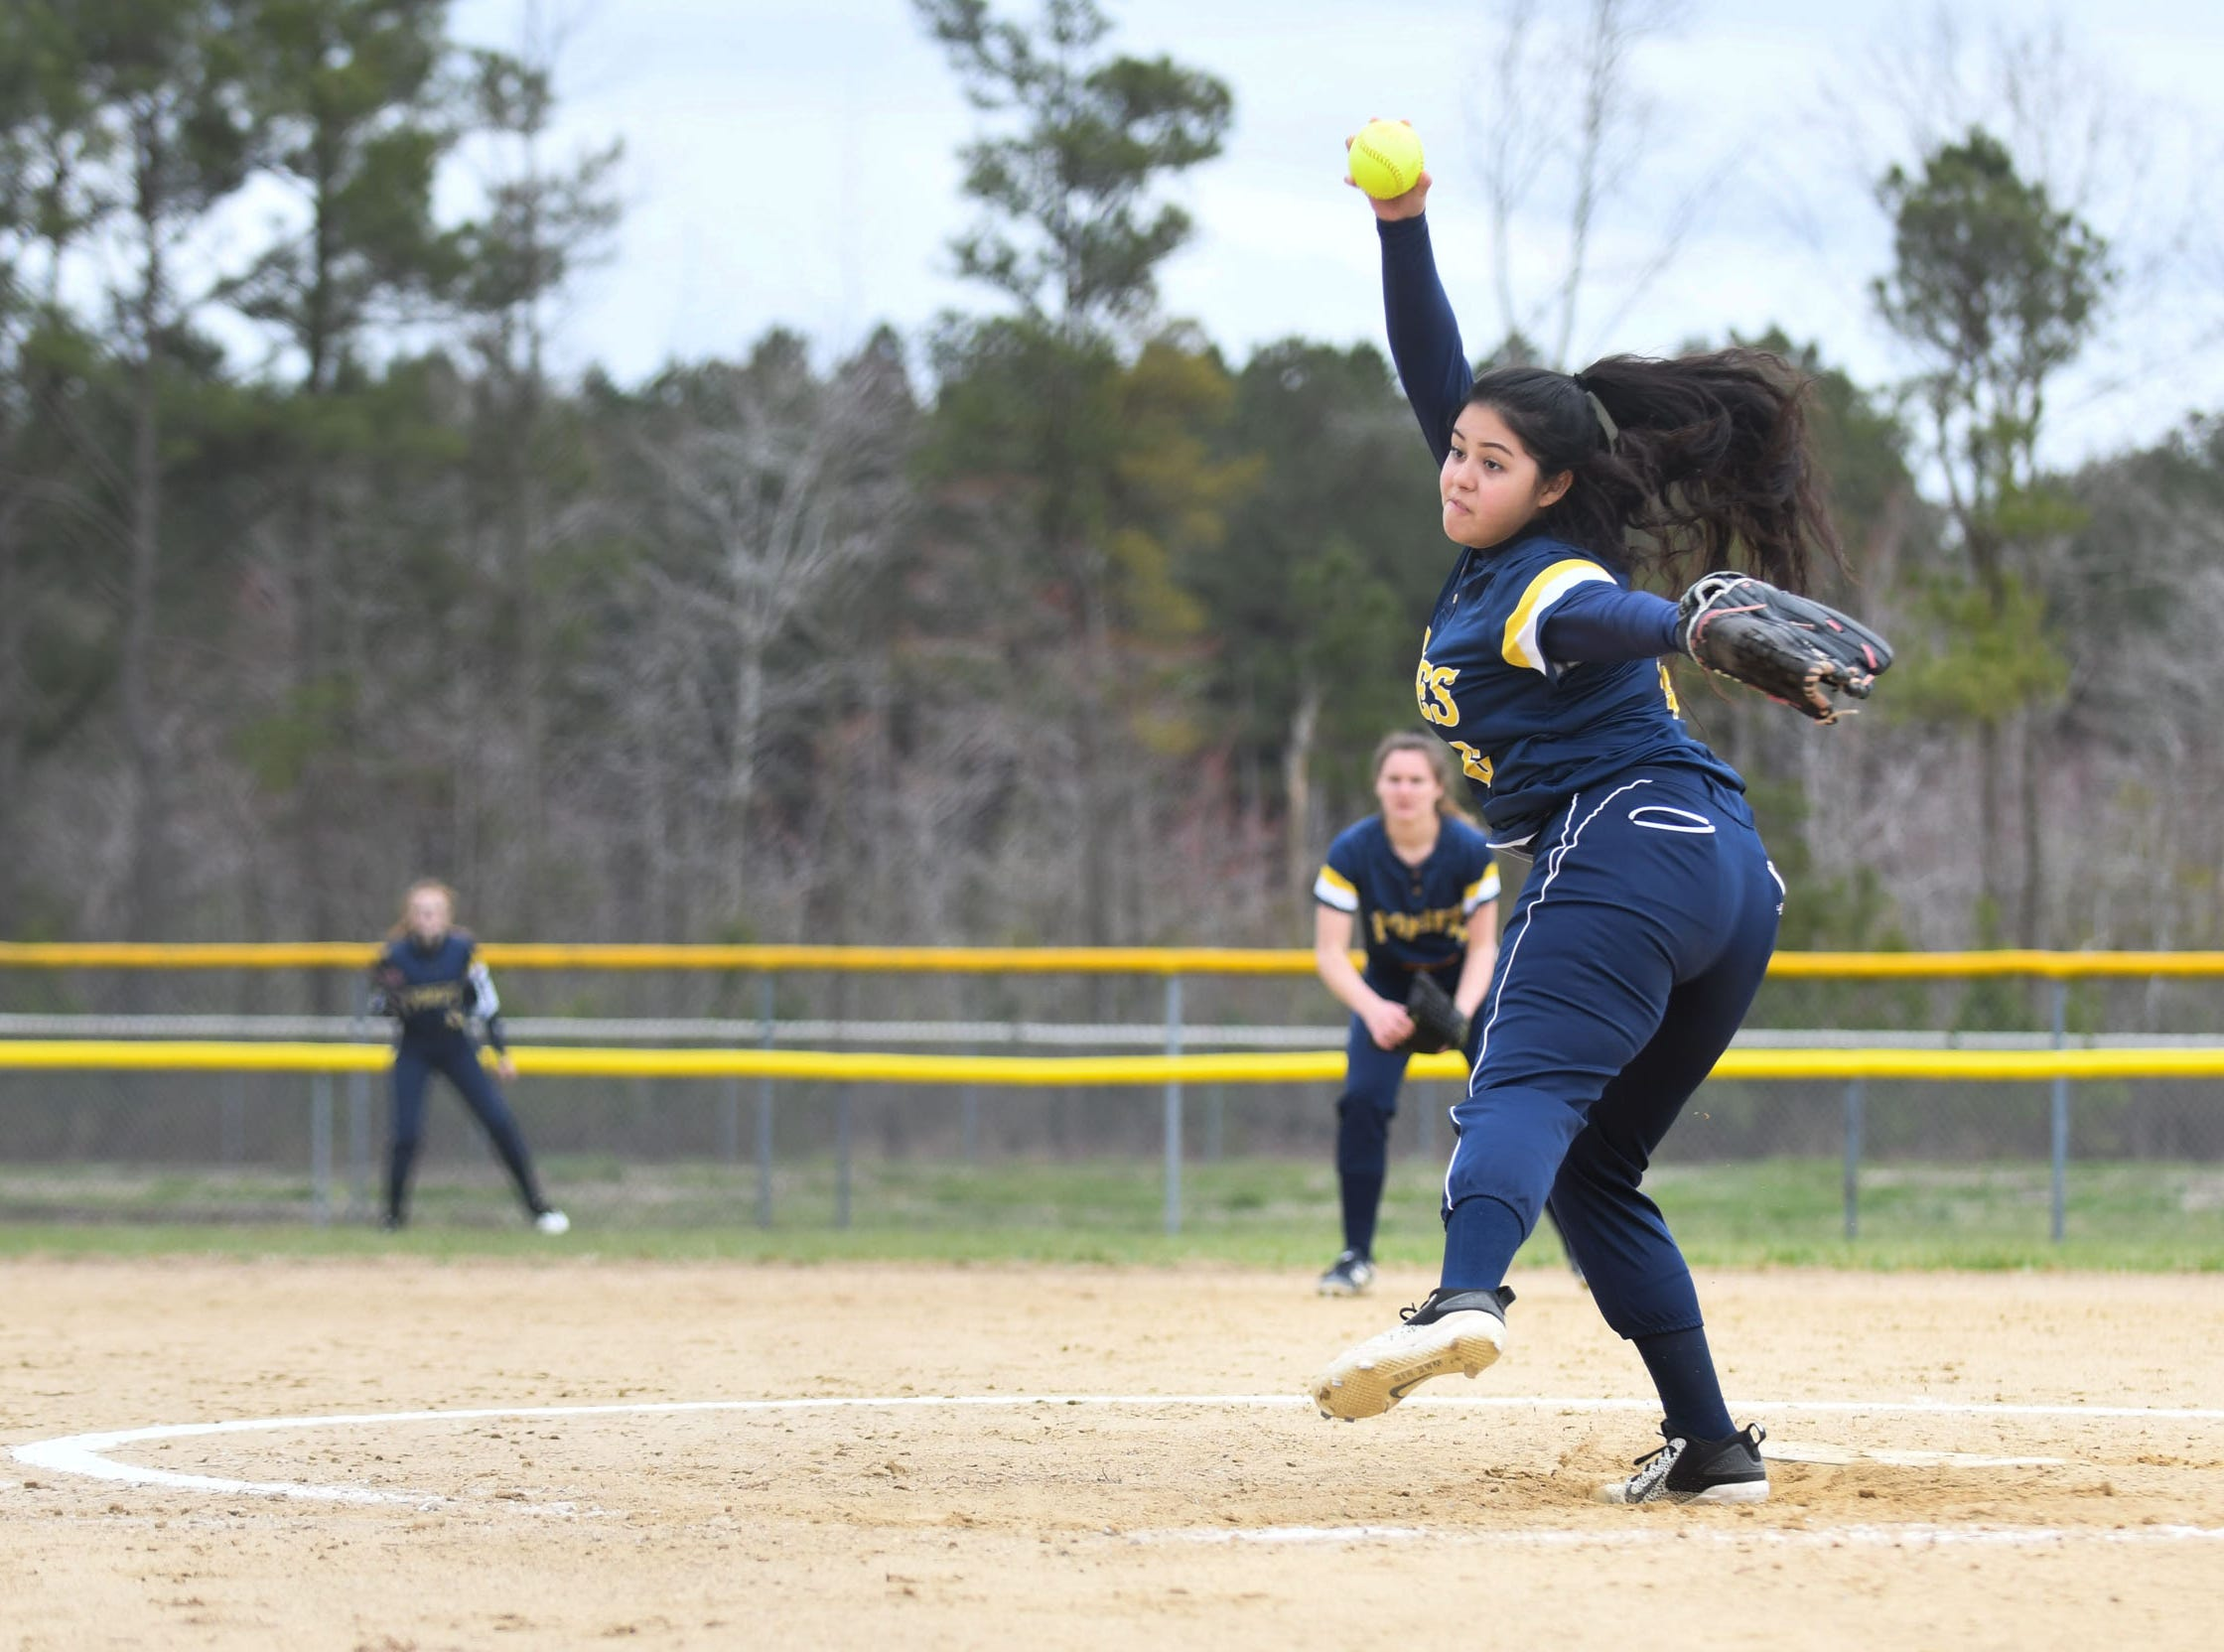 Chincoteague's Delilah Flores pitches against Holly Grove on Wednesday, March 20, 2019 in Westover, Md.